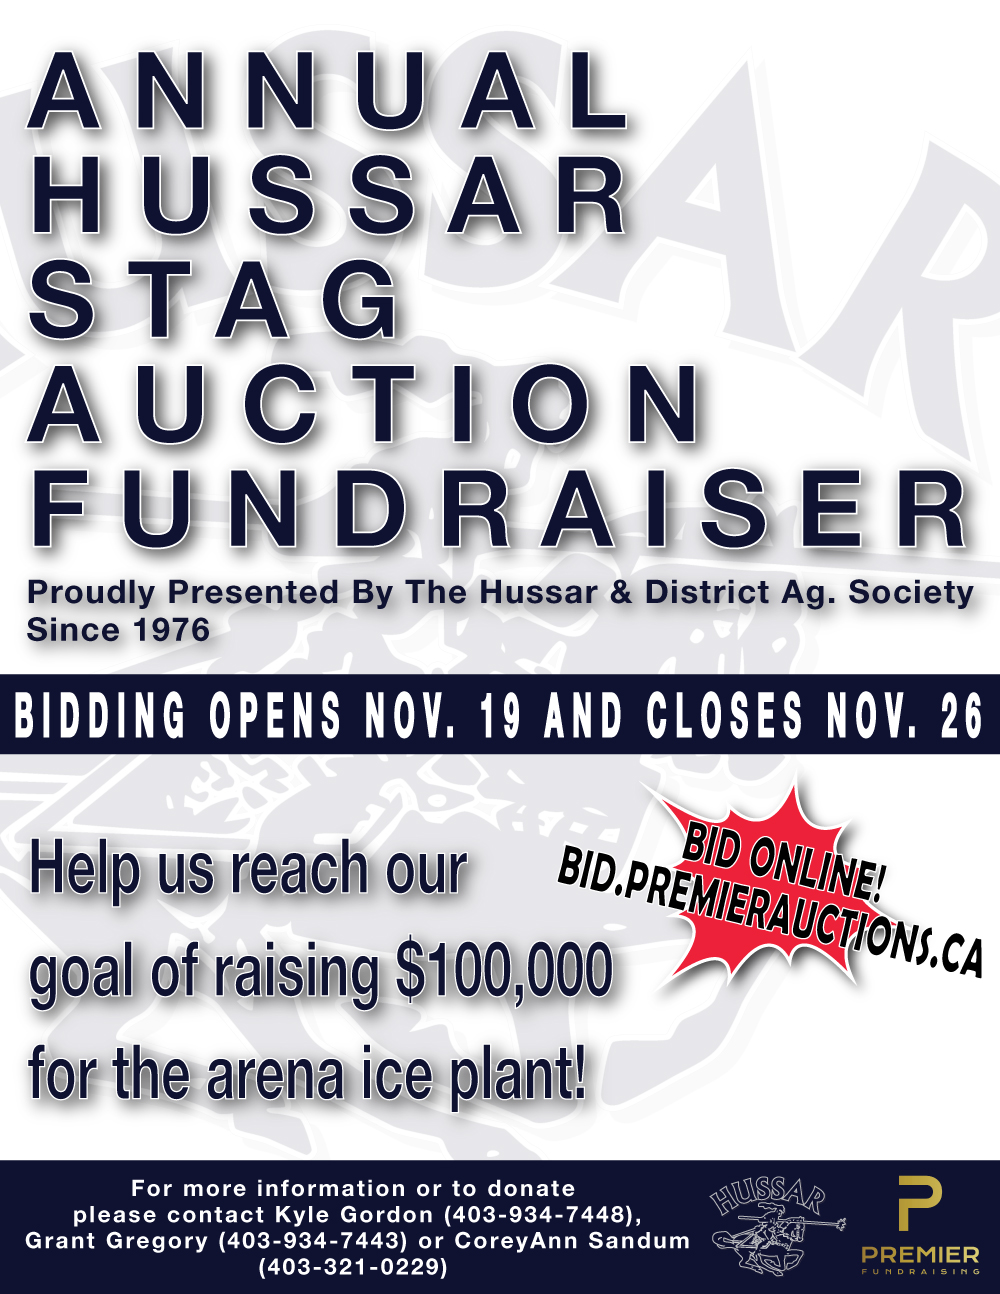 Hussar Annual Stag Auction Fundraiser November 26, 2021